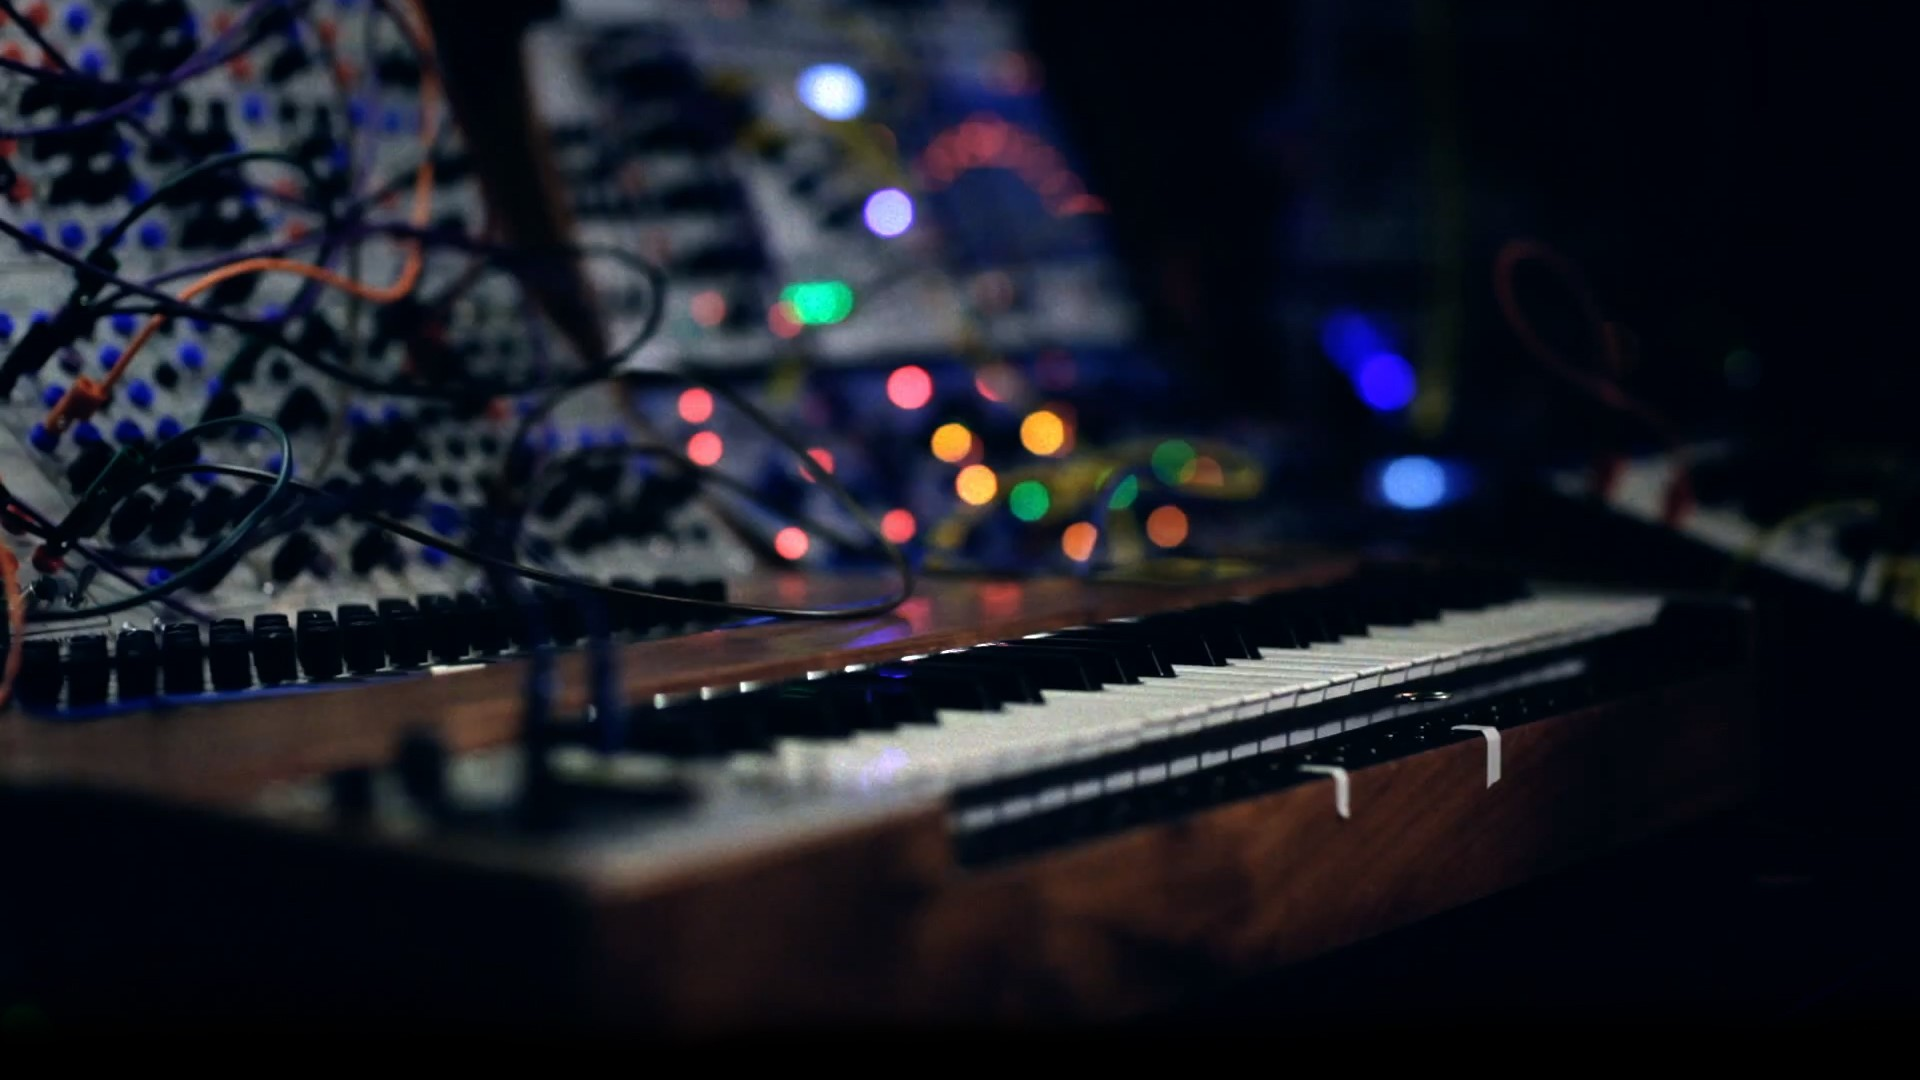 Wallpaper   Synthesizer Hd Wallpaper Backgrounds 1920x1080